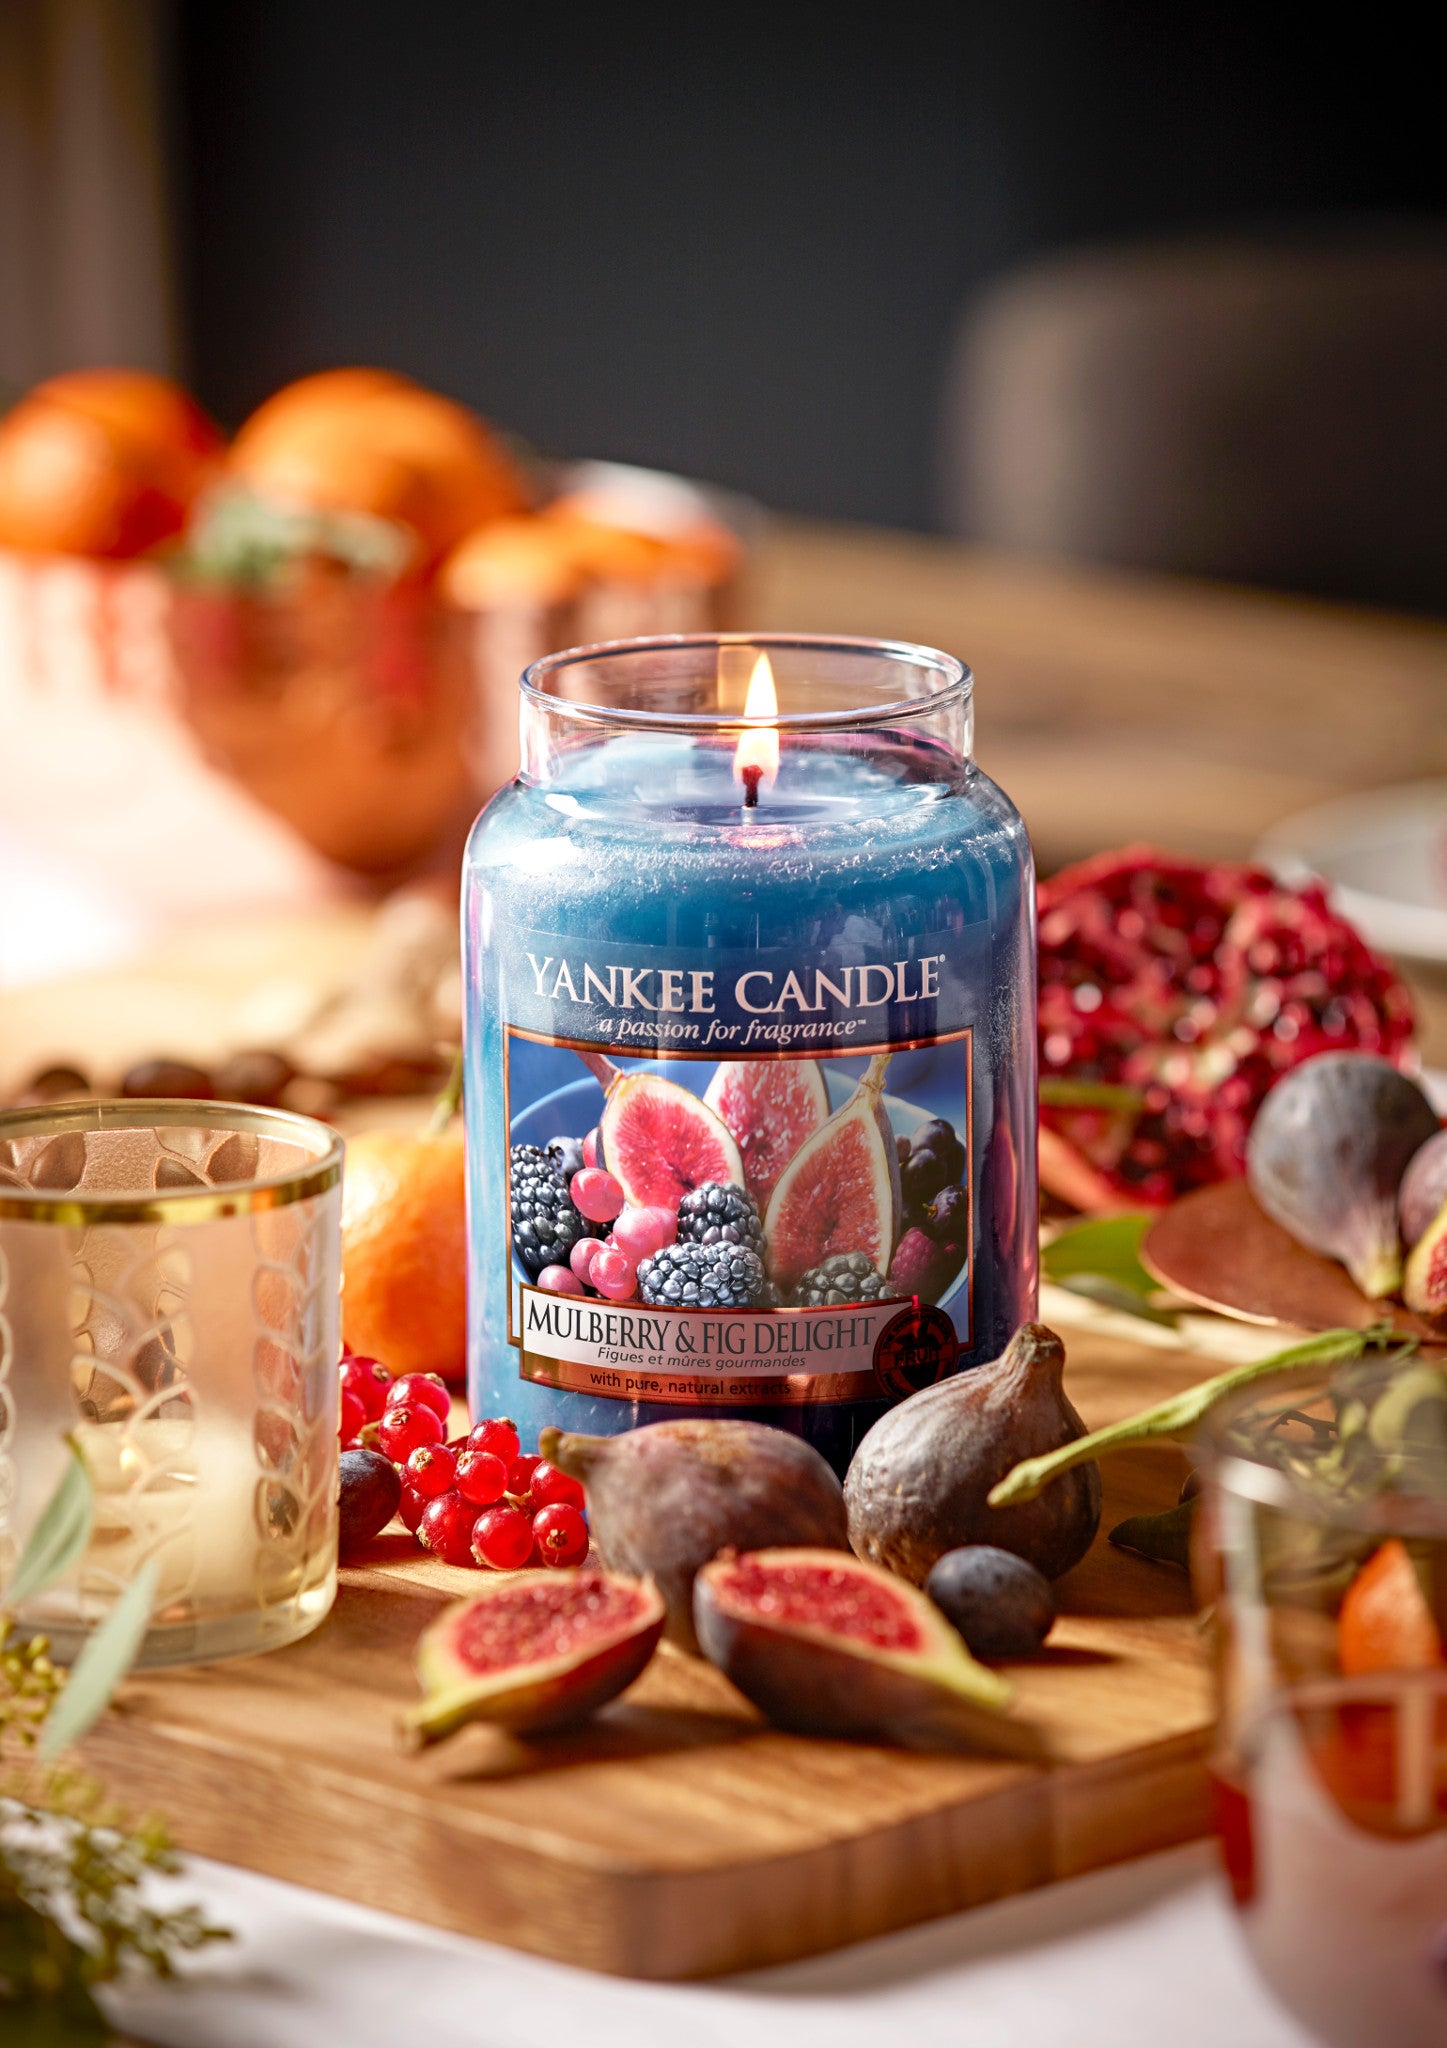 MULBERRY & FIG DELIGHT -Yankee Candle- Tea Light